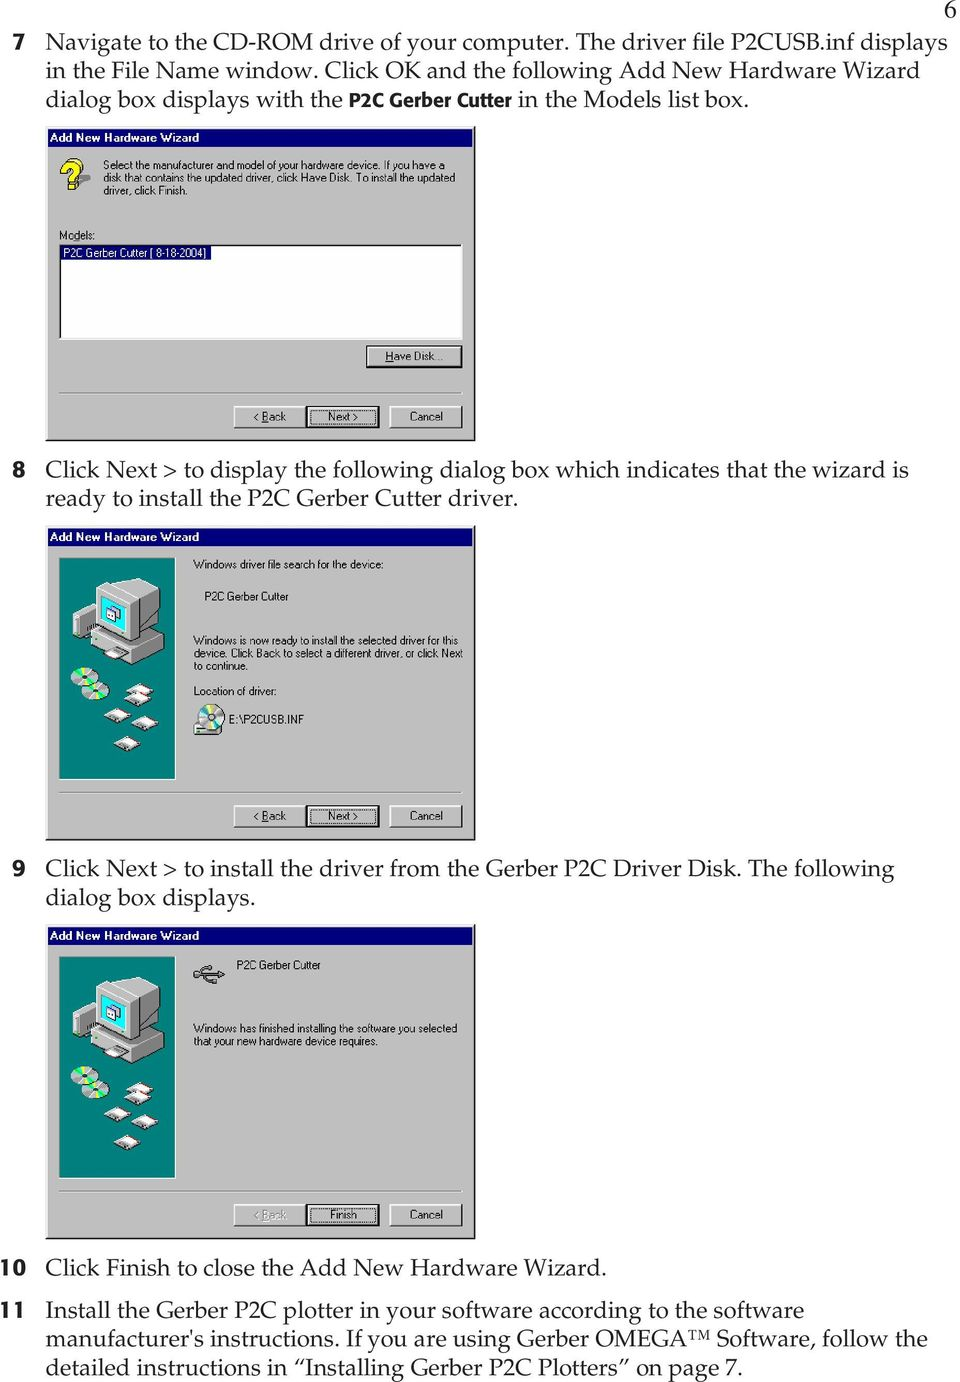 8 Click Next > to display the following dialog box which indicates that the wizard is ready to install the P2C Gerber Cutter driver.